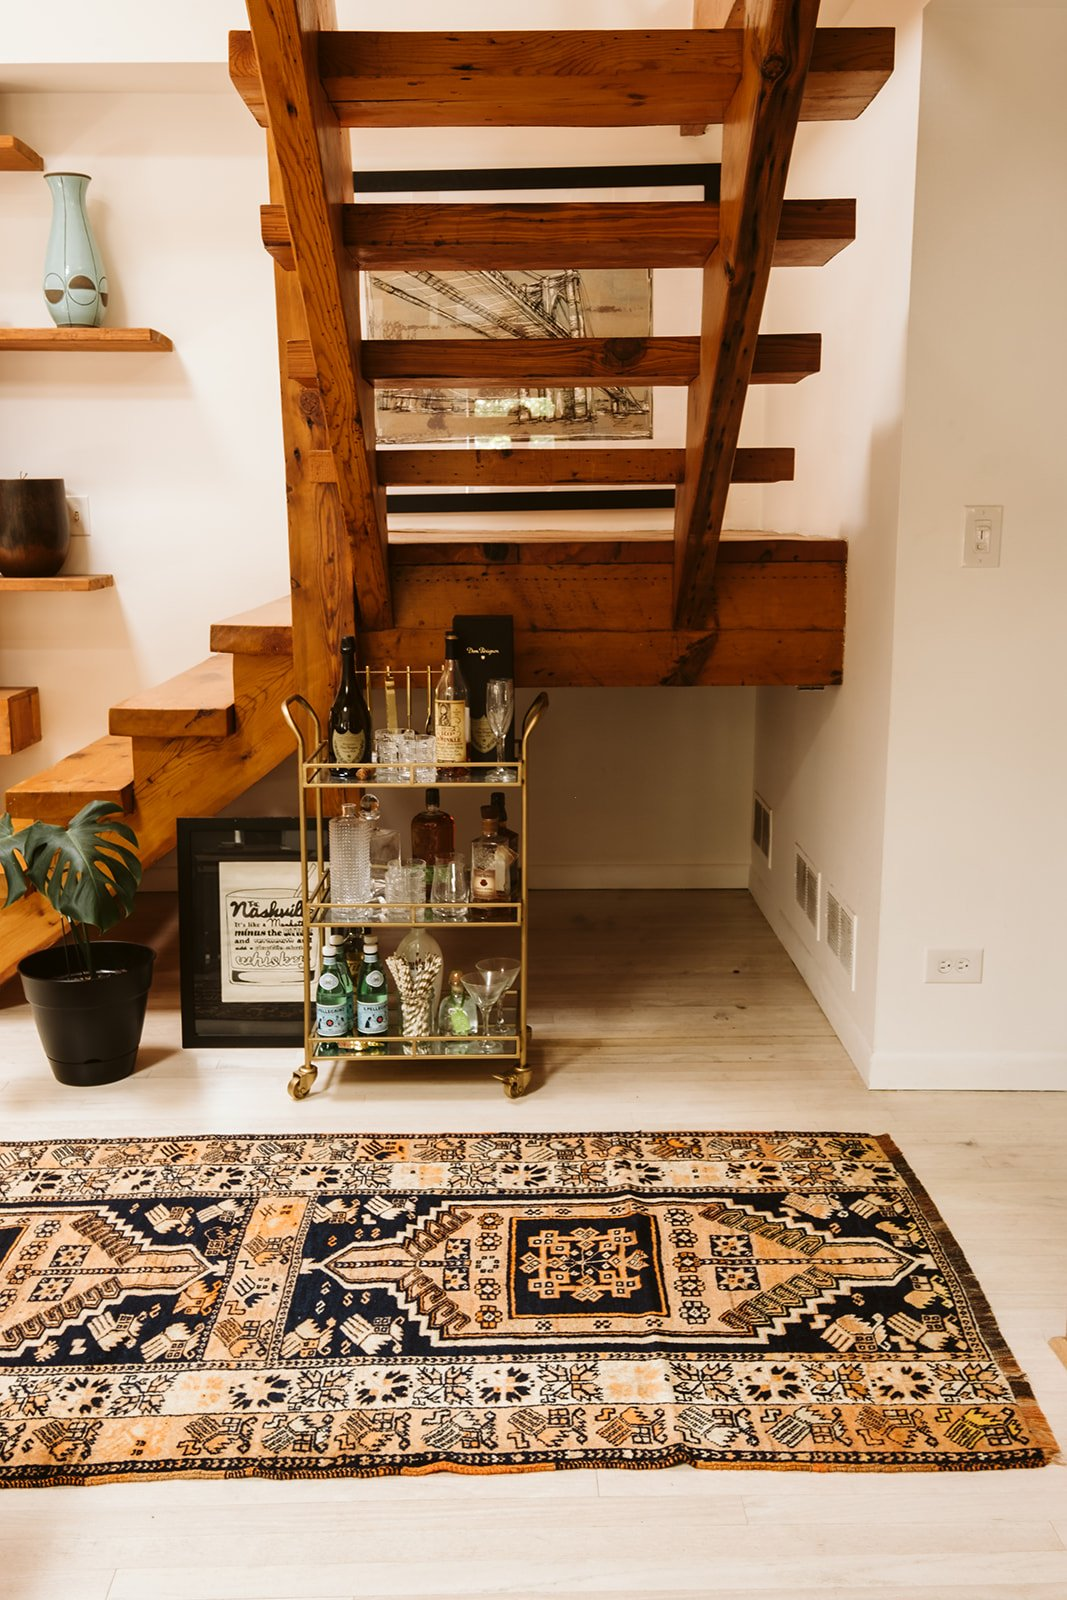 vintage rug next to a bar car under a wooden staircase